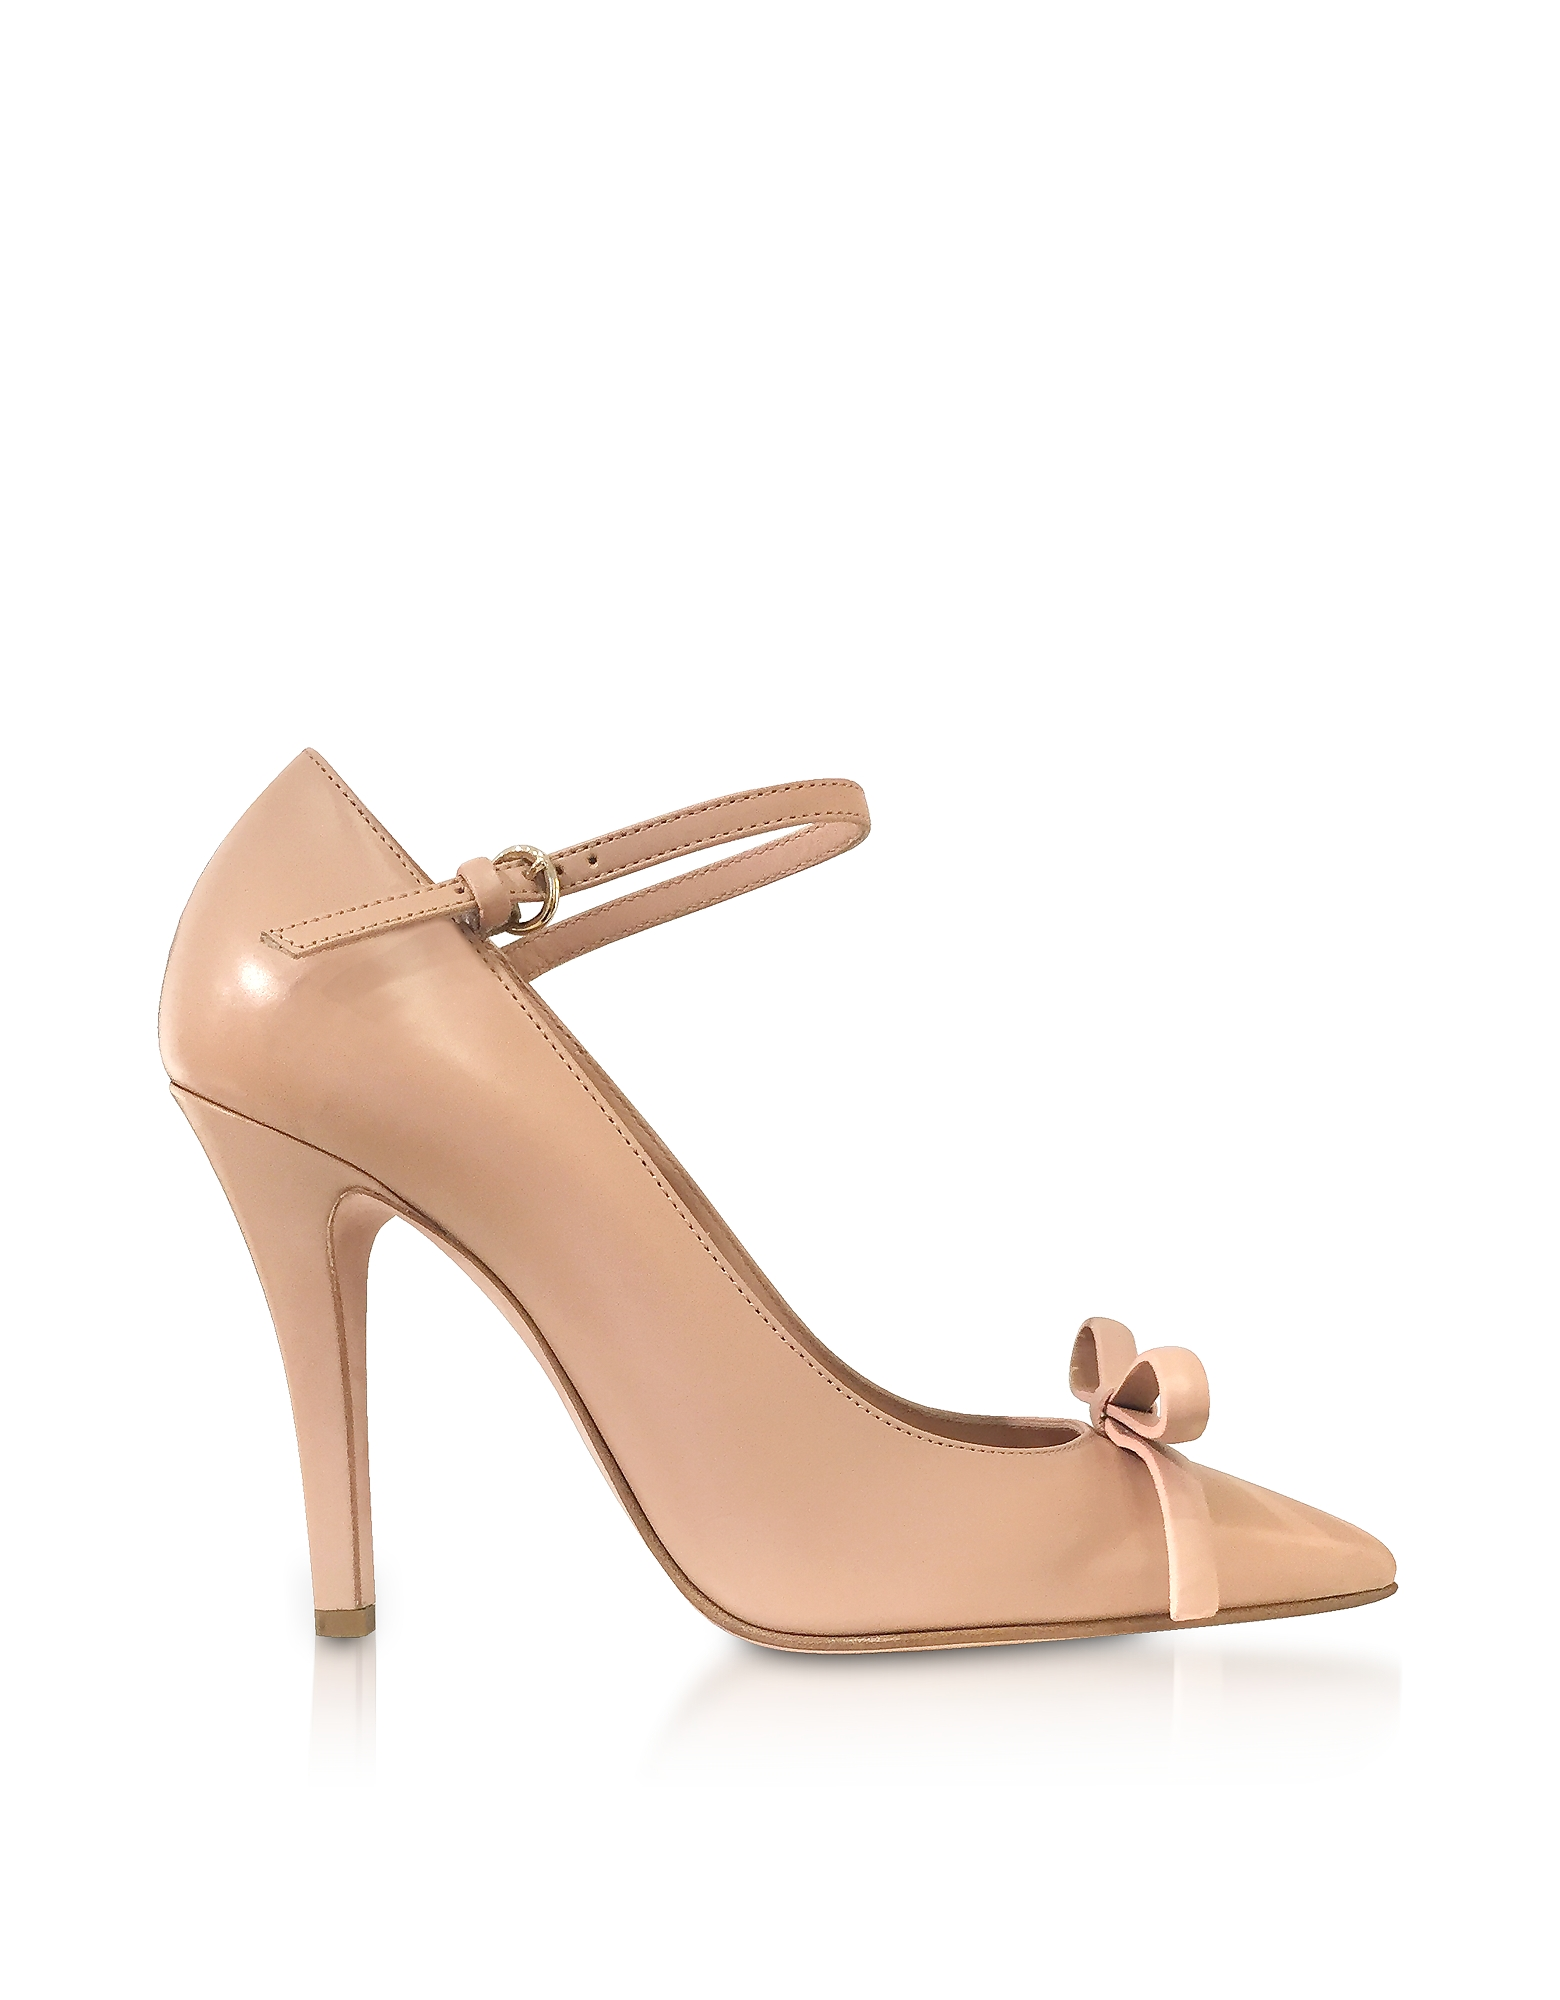 RED Valentino Shoes, Nude Patent Leather Bow Pumps